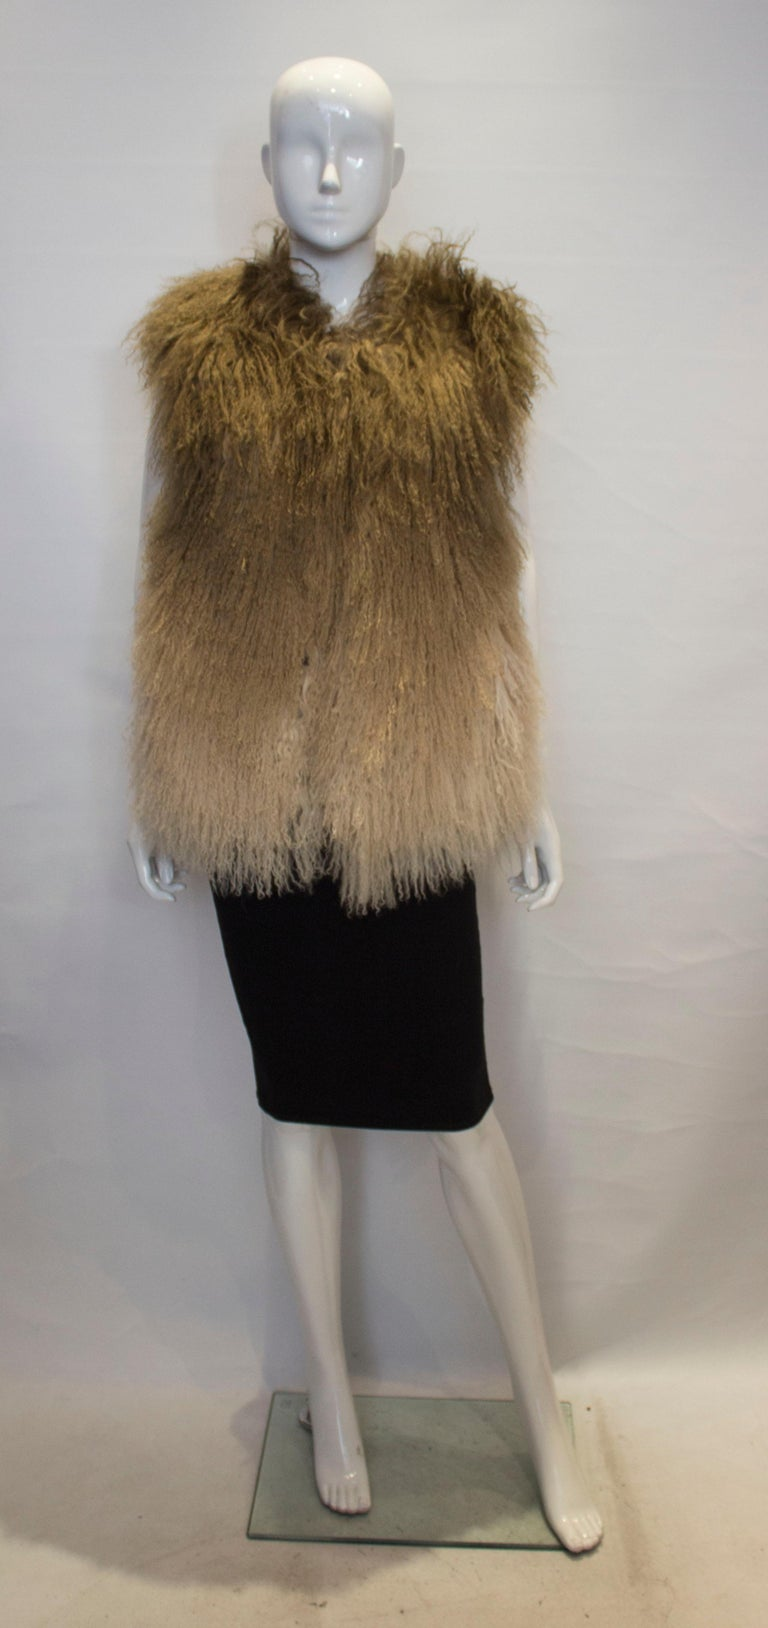 A chic mongolian fur gillet  by Matthew Williamson. The gillet is in various shades of brown and is fully lined.